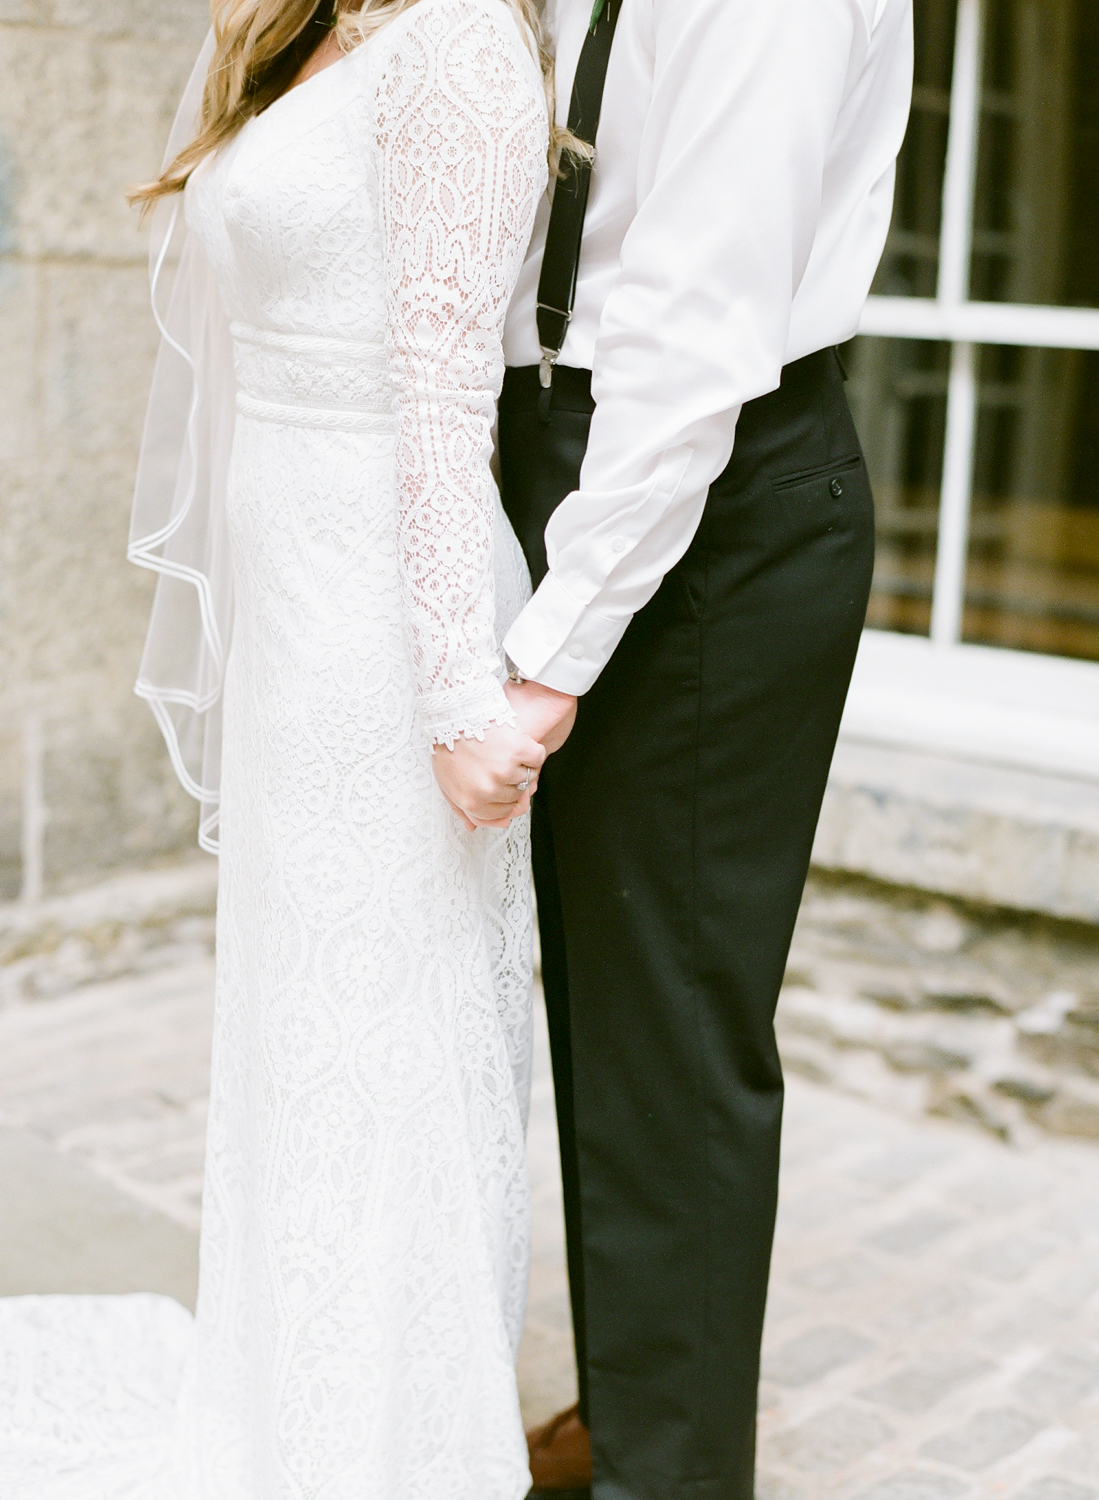 Jacqueline Anne Photography - Jessica and Aaron in Halifax-60.jpg